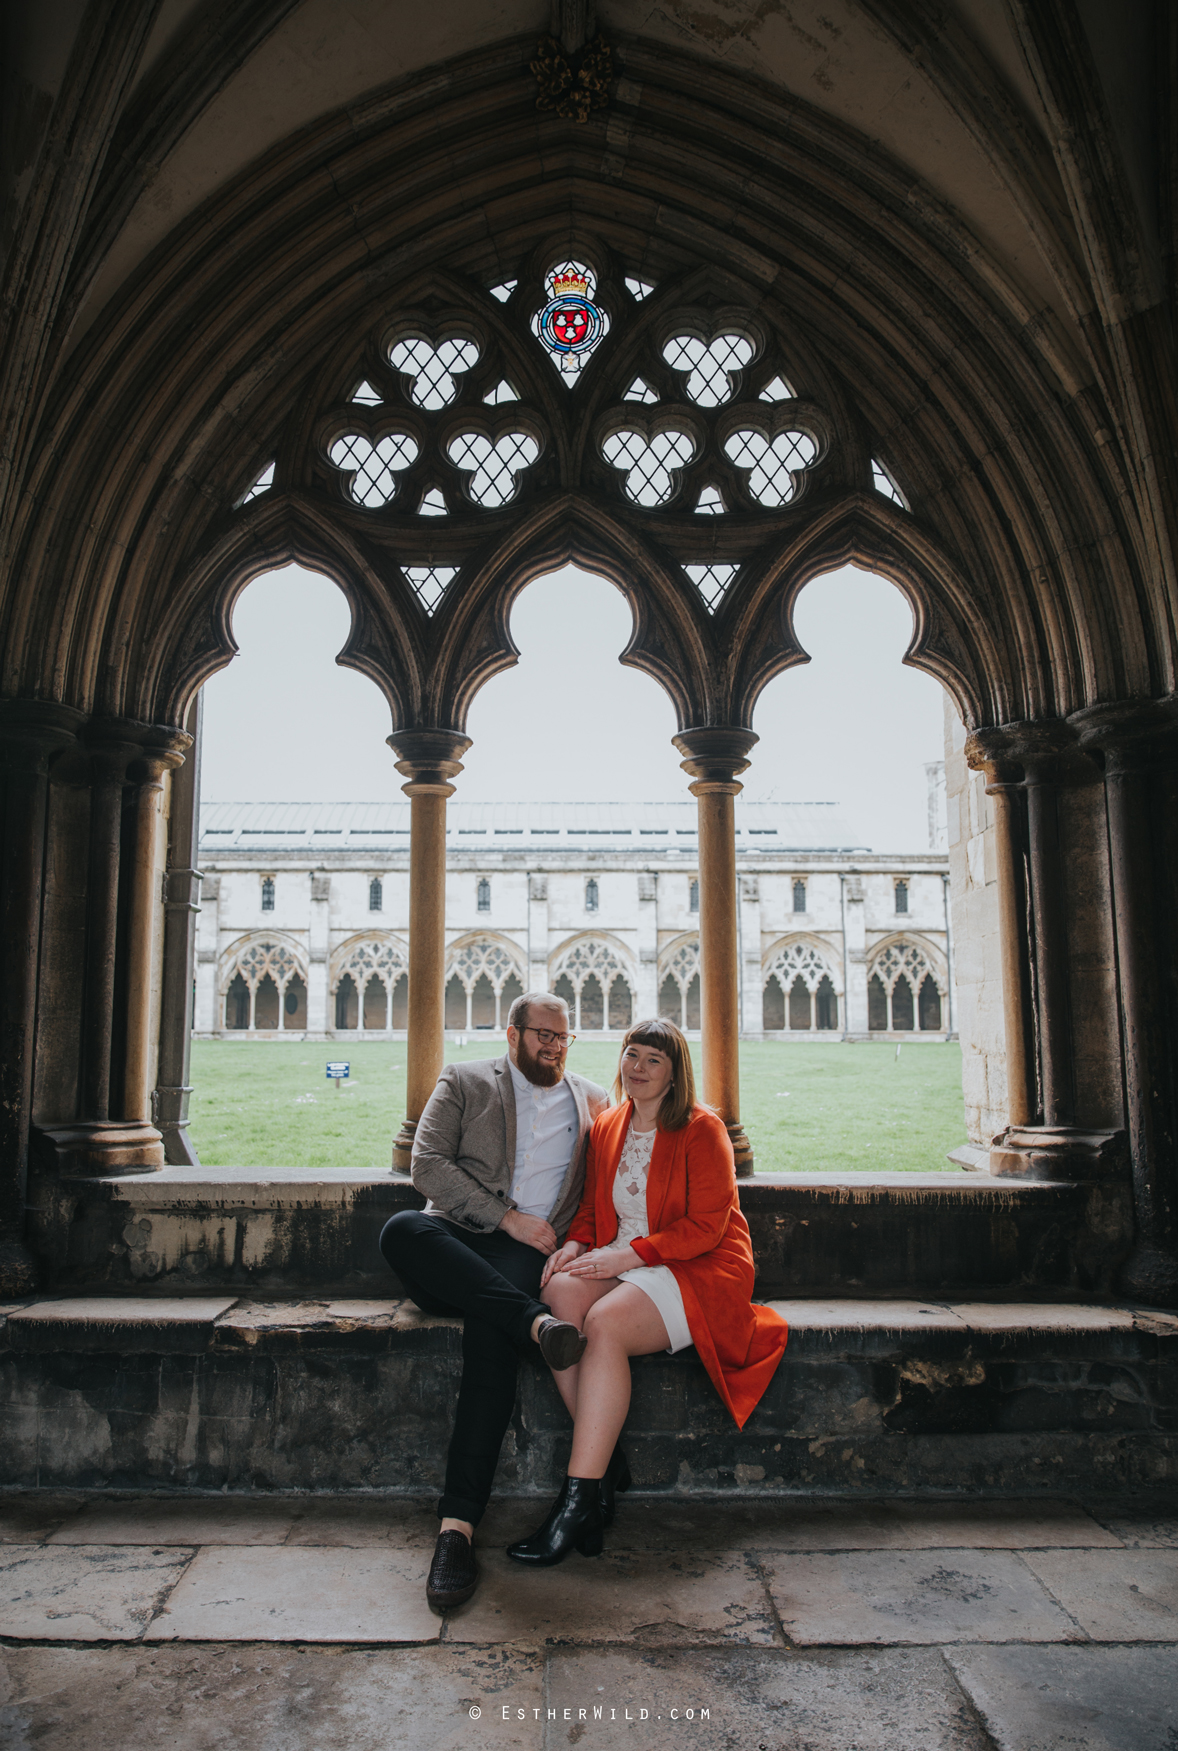 Norwich_Cathedral_Photo_Session_Engagement_Love_Pre-Wedding_IMG_3441.jpg